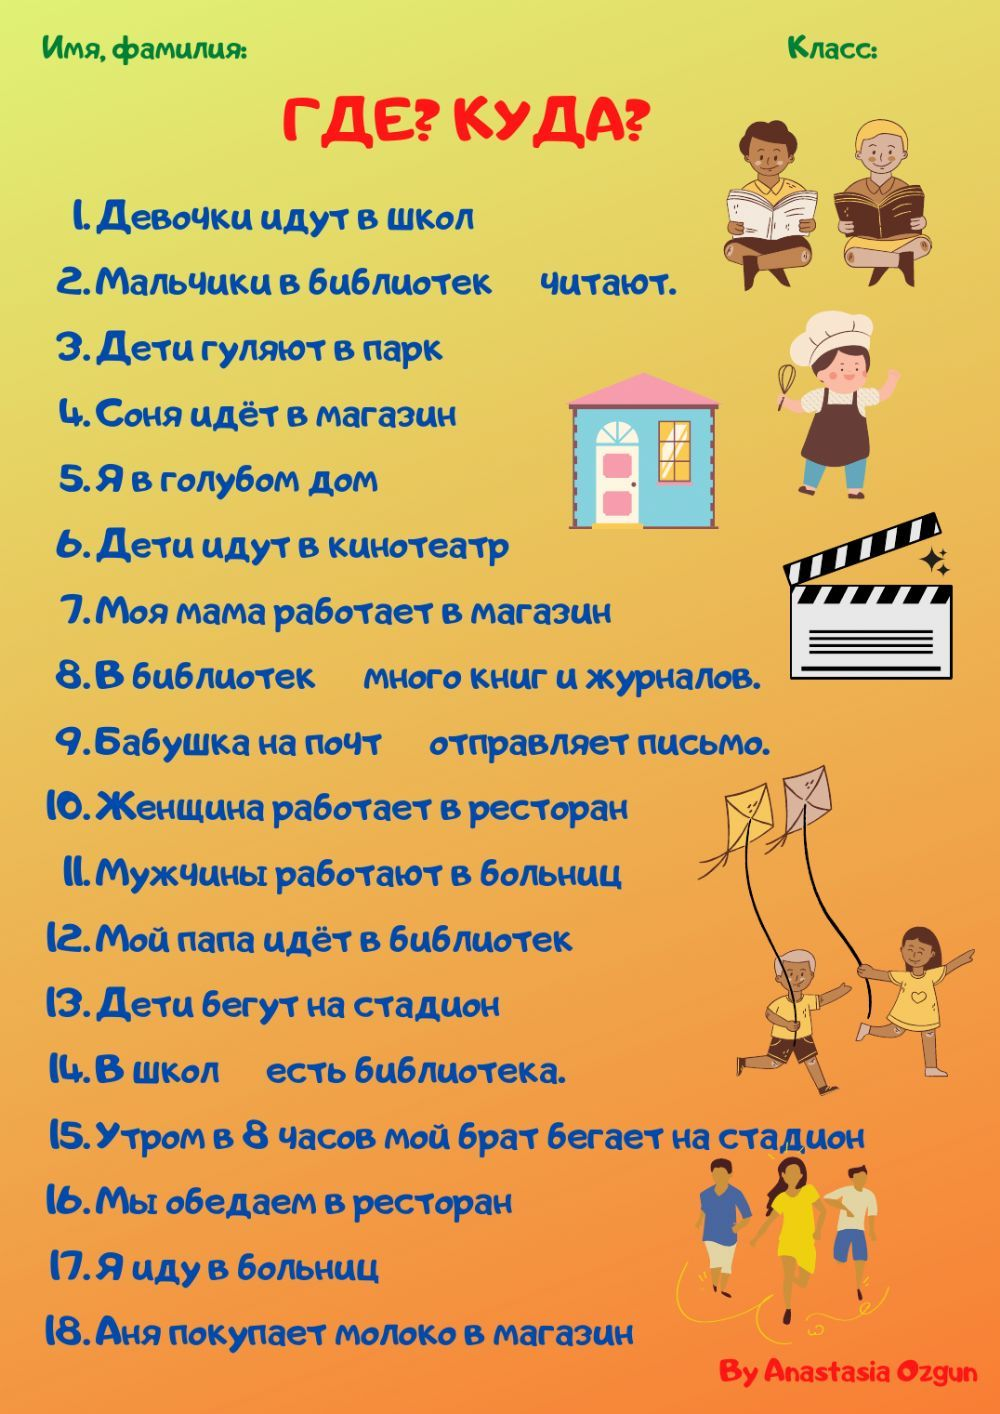 Gde Kuda Online Worksheet For Nachalnyj You Can Do The Exercises Online Or Download The Worksheet As Pdf In 2021 Russian Language Learning Online Learning Workbook